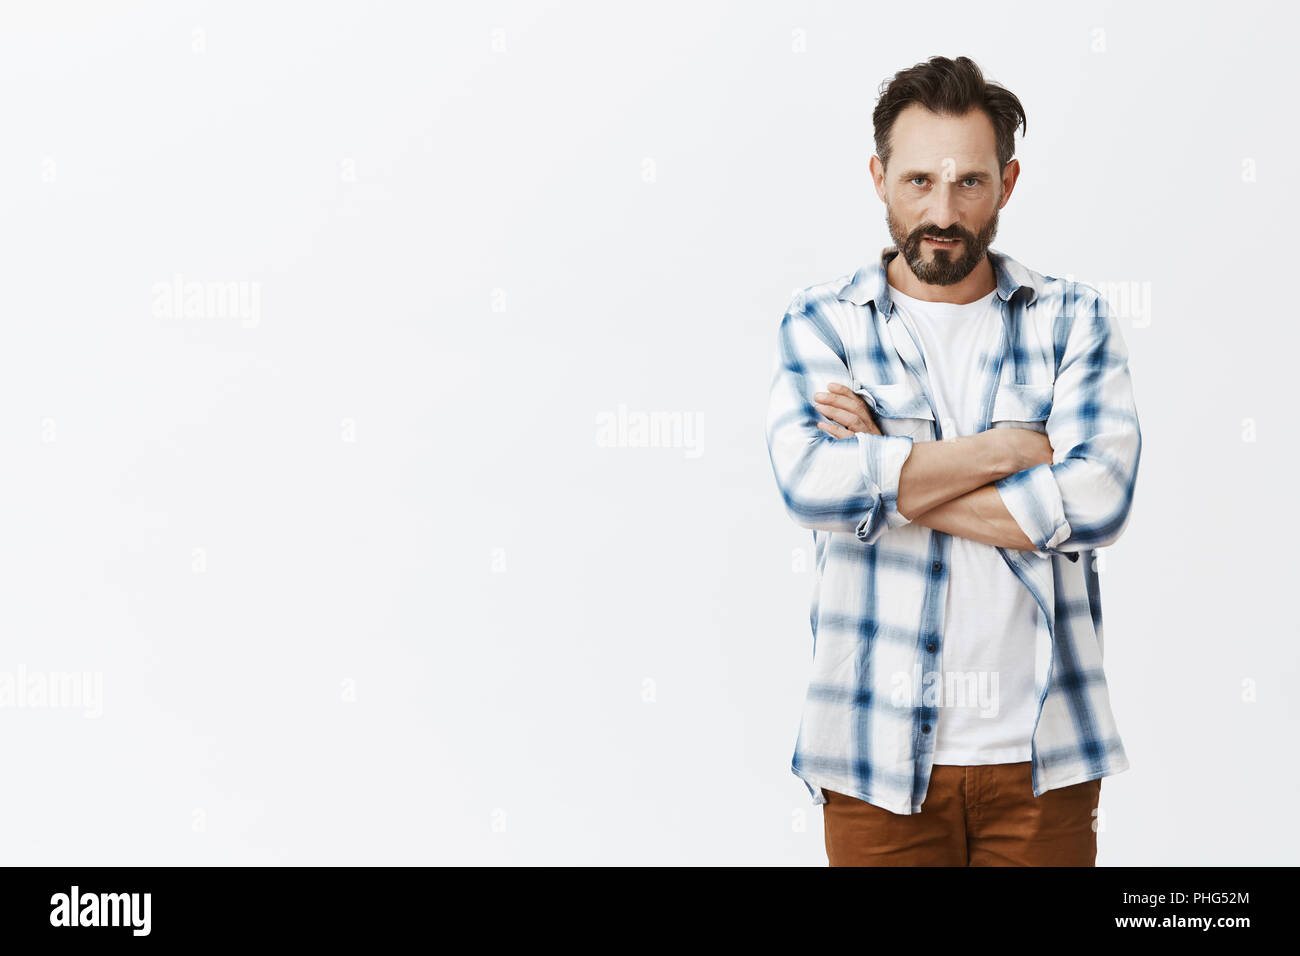 Guy feeling scorn, closing himself from people, standing in defending pose with hands crossed on chest, looking with hate and anger from under forehead at camera, expressing contempt over grey wall - Stock Image